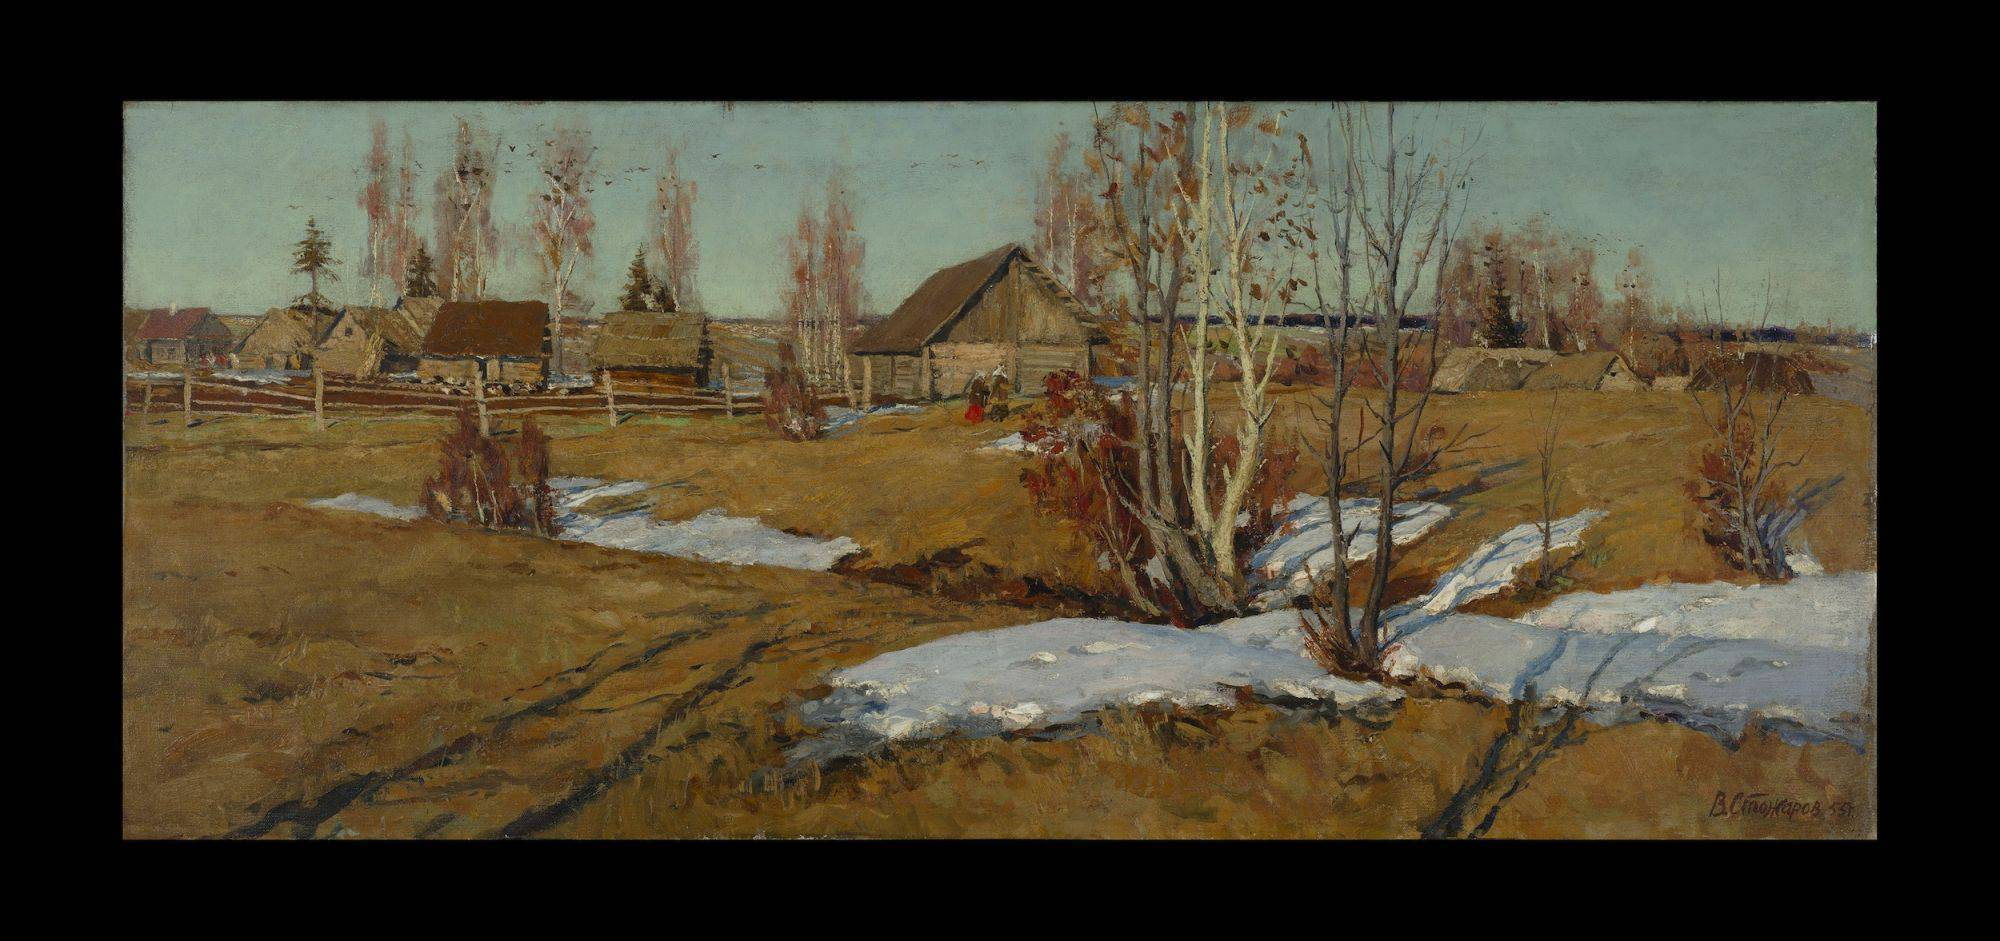 Houses Made Of Wood And Light Calm Evening By Stozharov, Vladimir Fedorovich | Russian